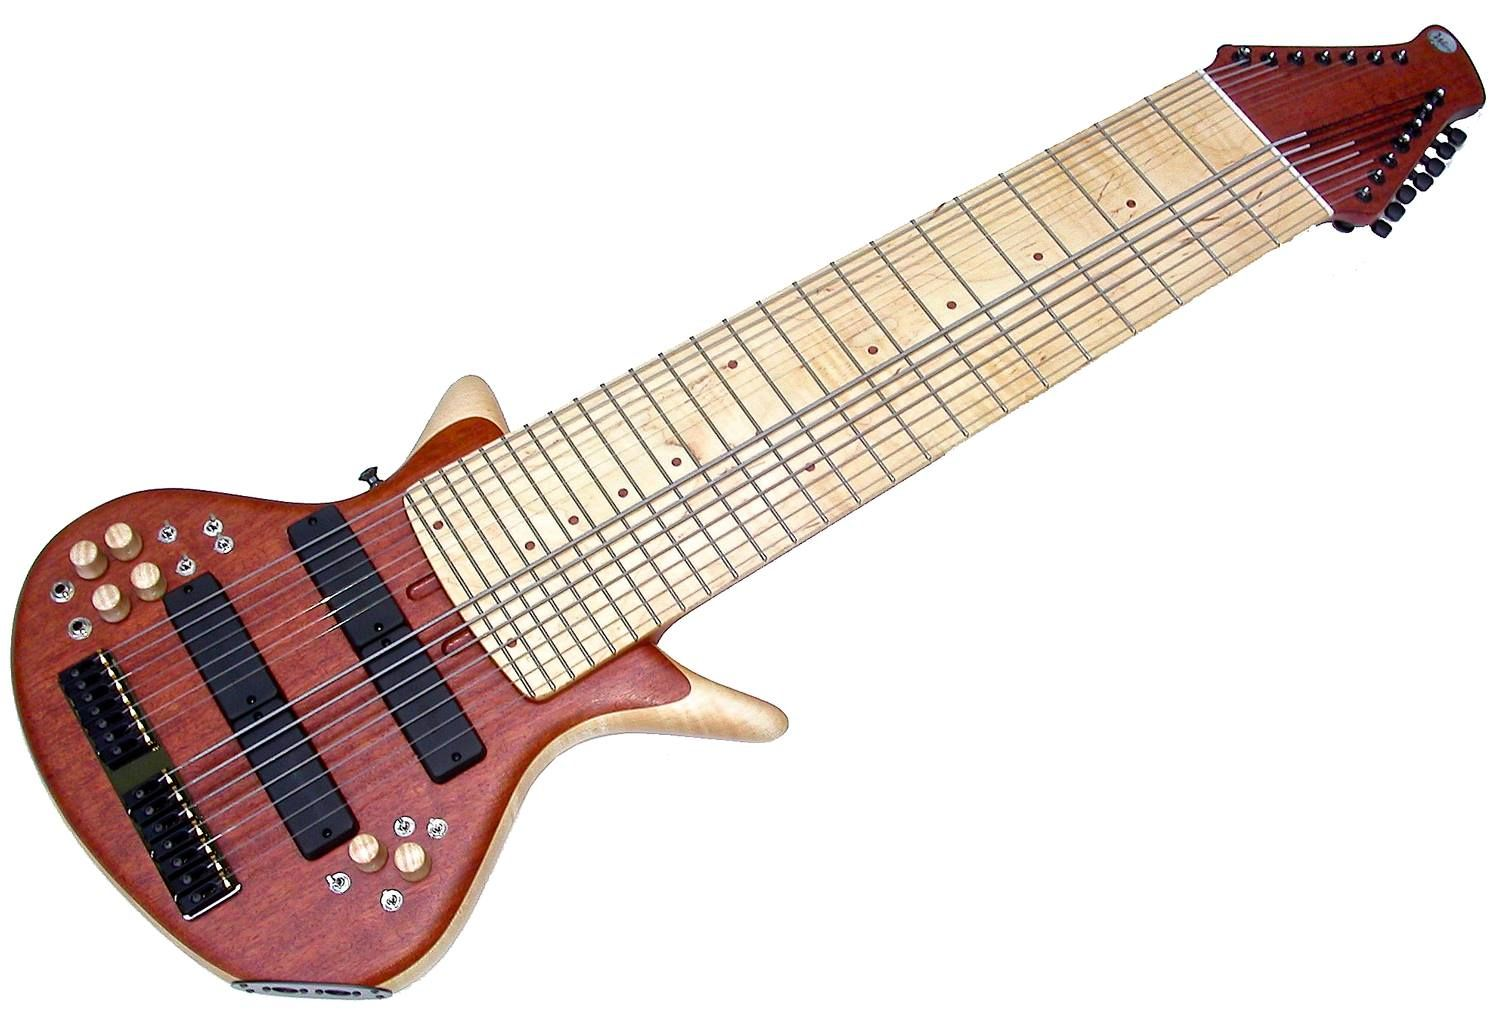 "Warr Phalanx 14-String Guitar by Warr Guitars ( founded 1991 by Mark Warr). 14 Piëzo / 12 MIDI .Pudauk top. Curly Maple body core. Slightly figured Maple fingerboard. Maple / Pudak / Curly Maple knobs. Designed specifically for the ""uncrossed"" tunings.Bass side is tuned as a standard 6-string bass, and the guitar side is tuned an octave above, making touch-style playing easier for musicians accustomed to standard bass and guitar tunings. These guitars are often used for tapping like a…"